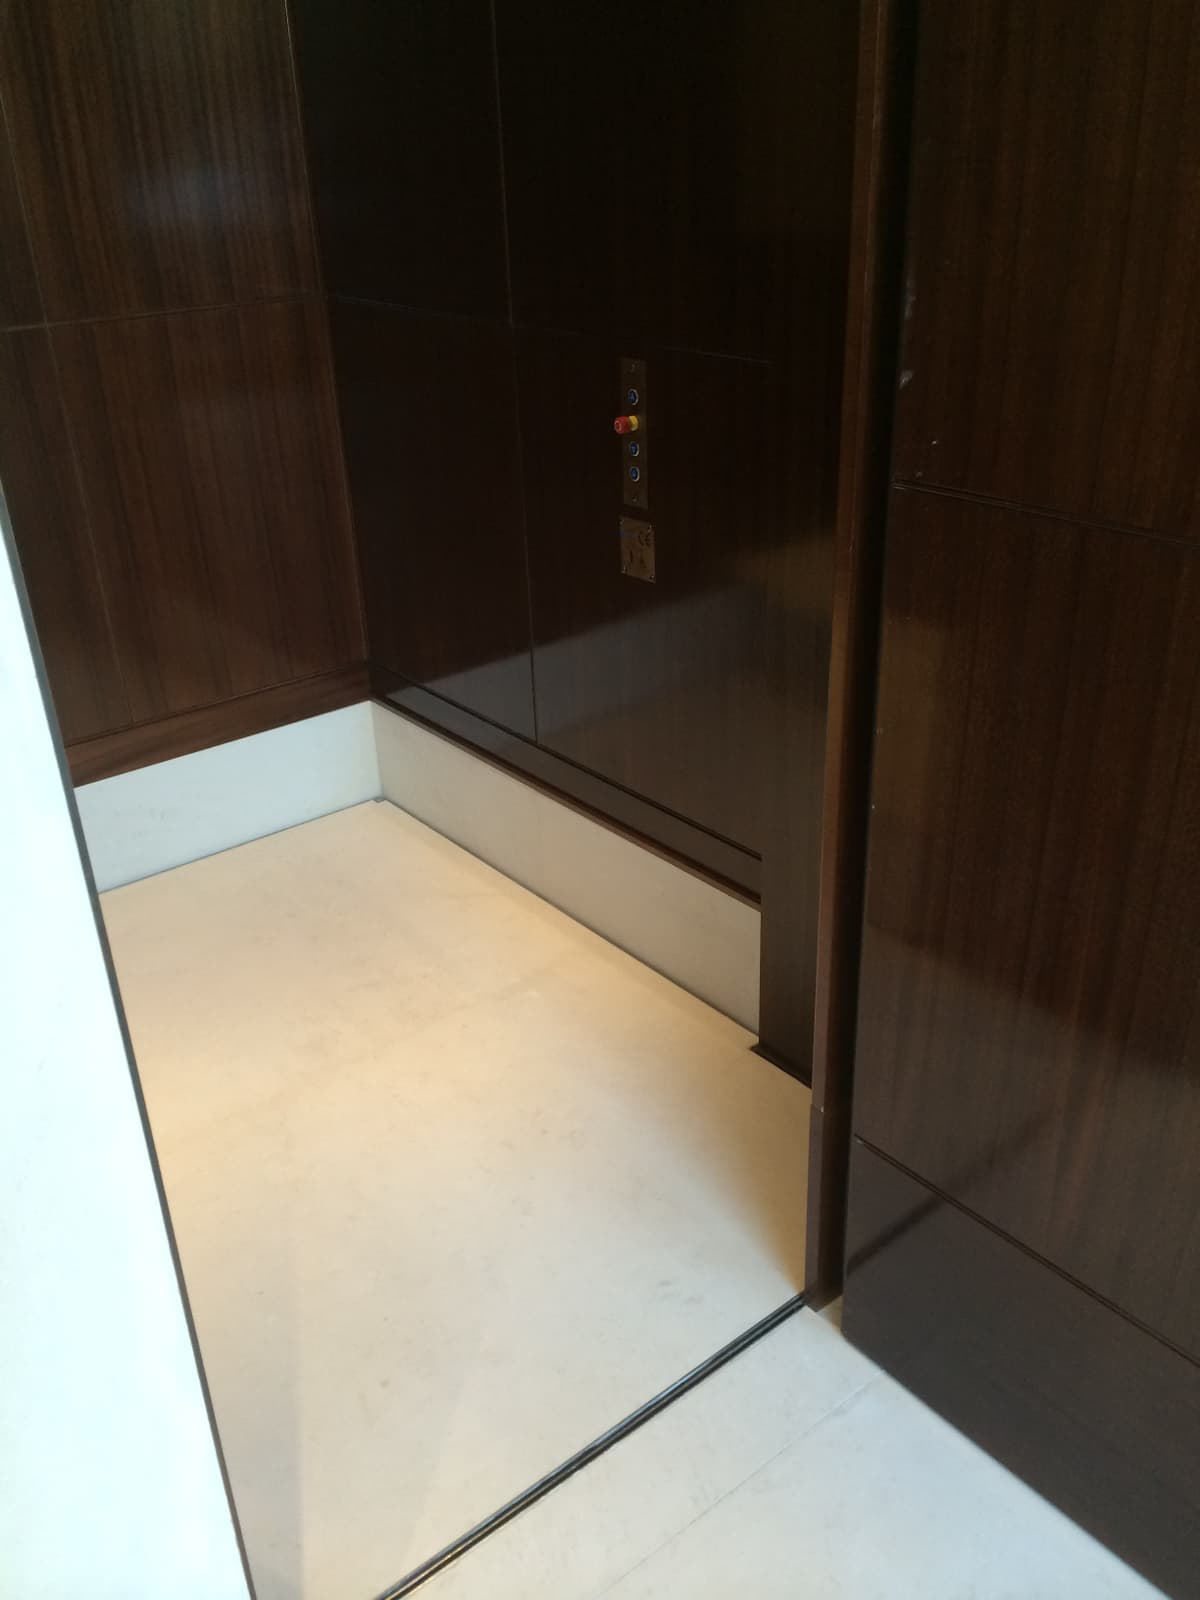 photograph of a white marble clad platform lift inside a dark wood clad lift shaft, with door open